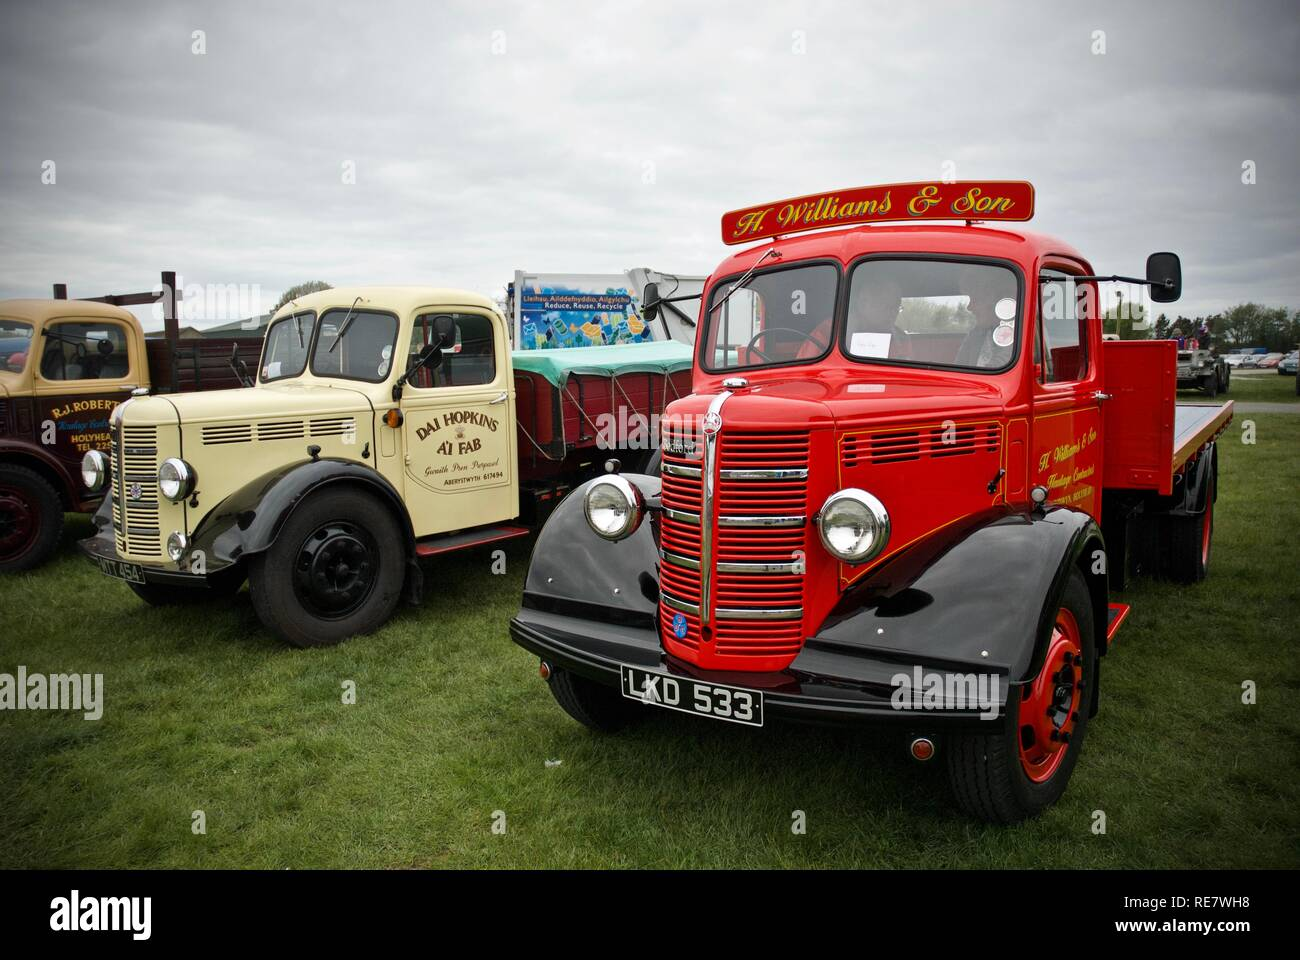 A red 1950 Bedford OIB truck at the Anglesey Vintage Rally, Anglesey, North Wales, UK, May 2015 - Stock Image